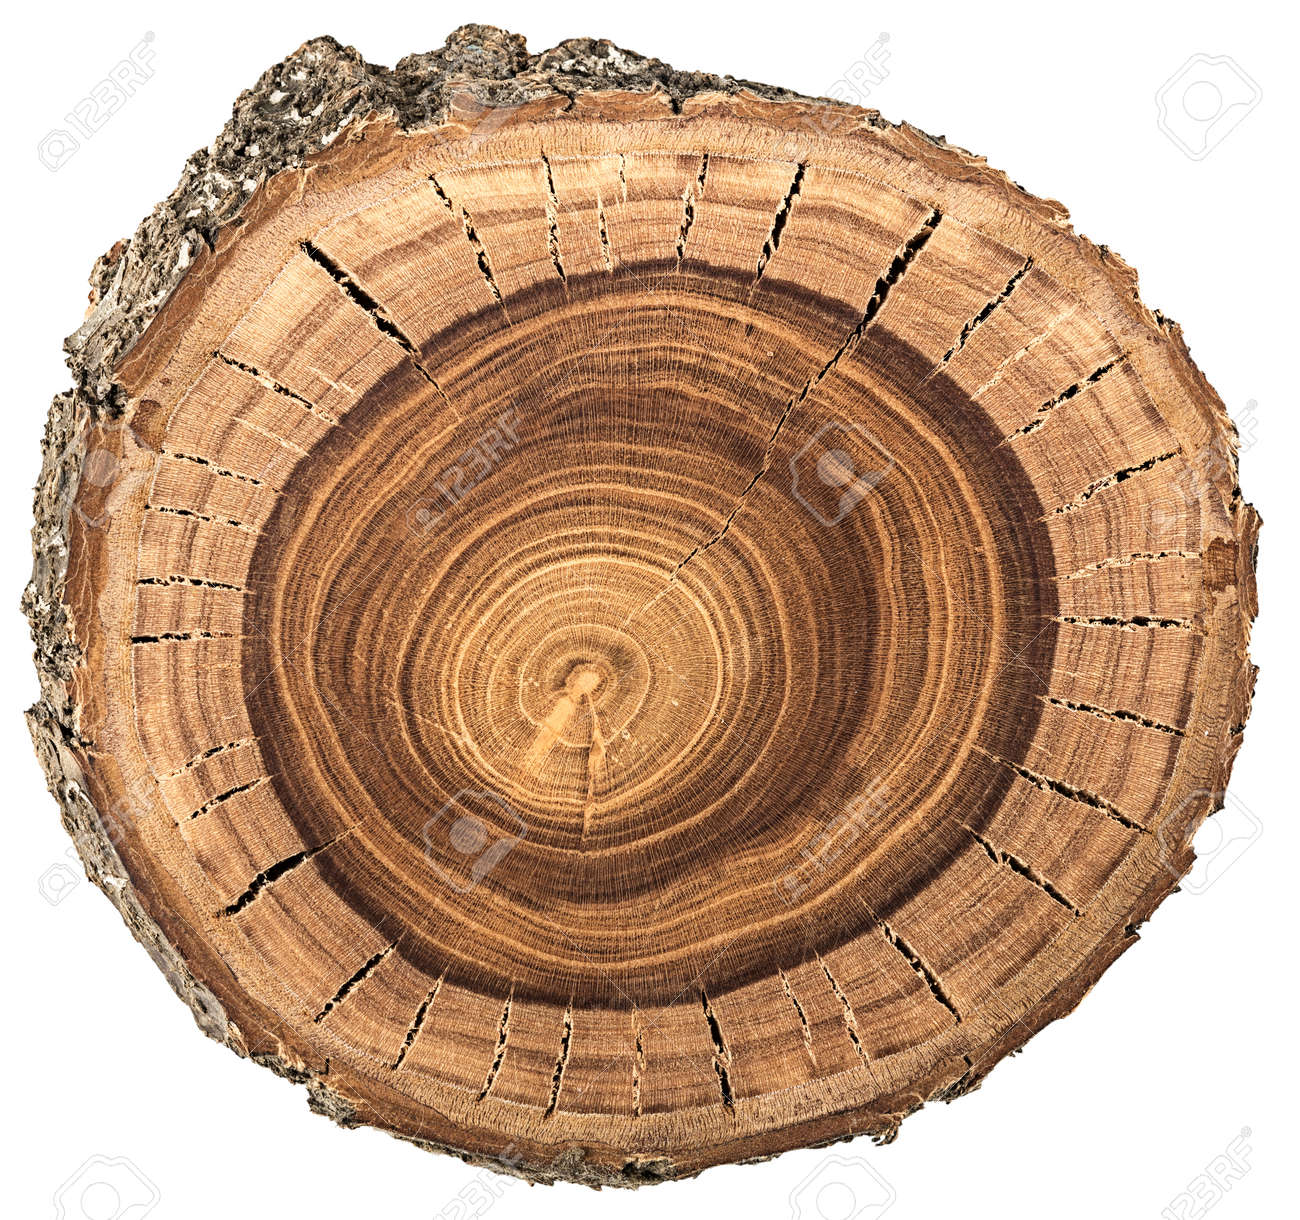 https://previews.123rf.com/images/sergieiev/sergieiev1503/sergieiev150300076/37839744-wood-circle-texture-slice-background-Stock-Photo.jpg